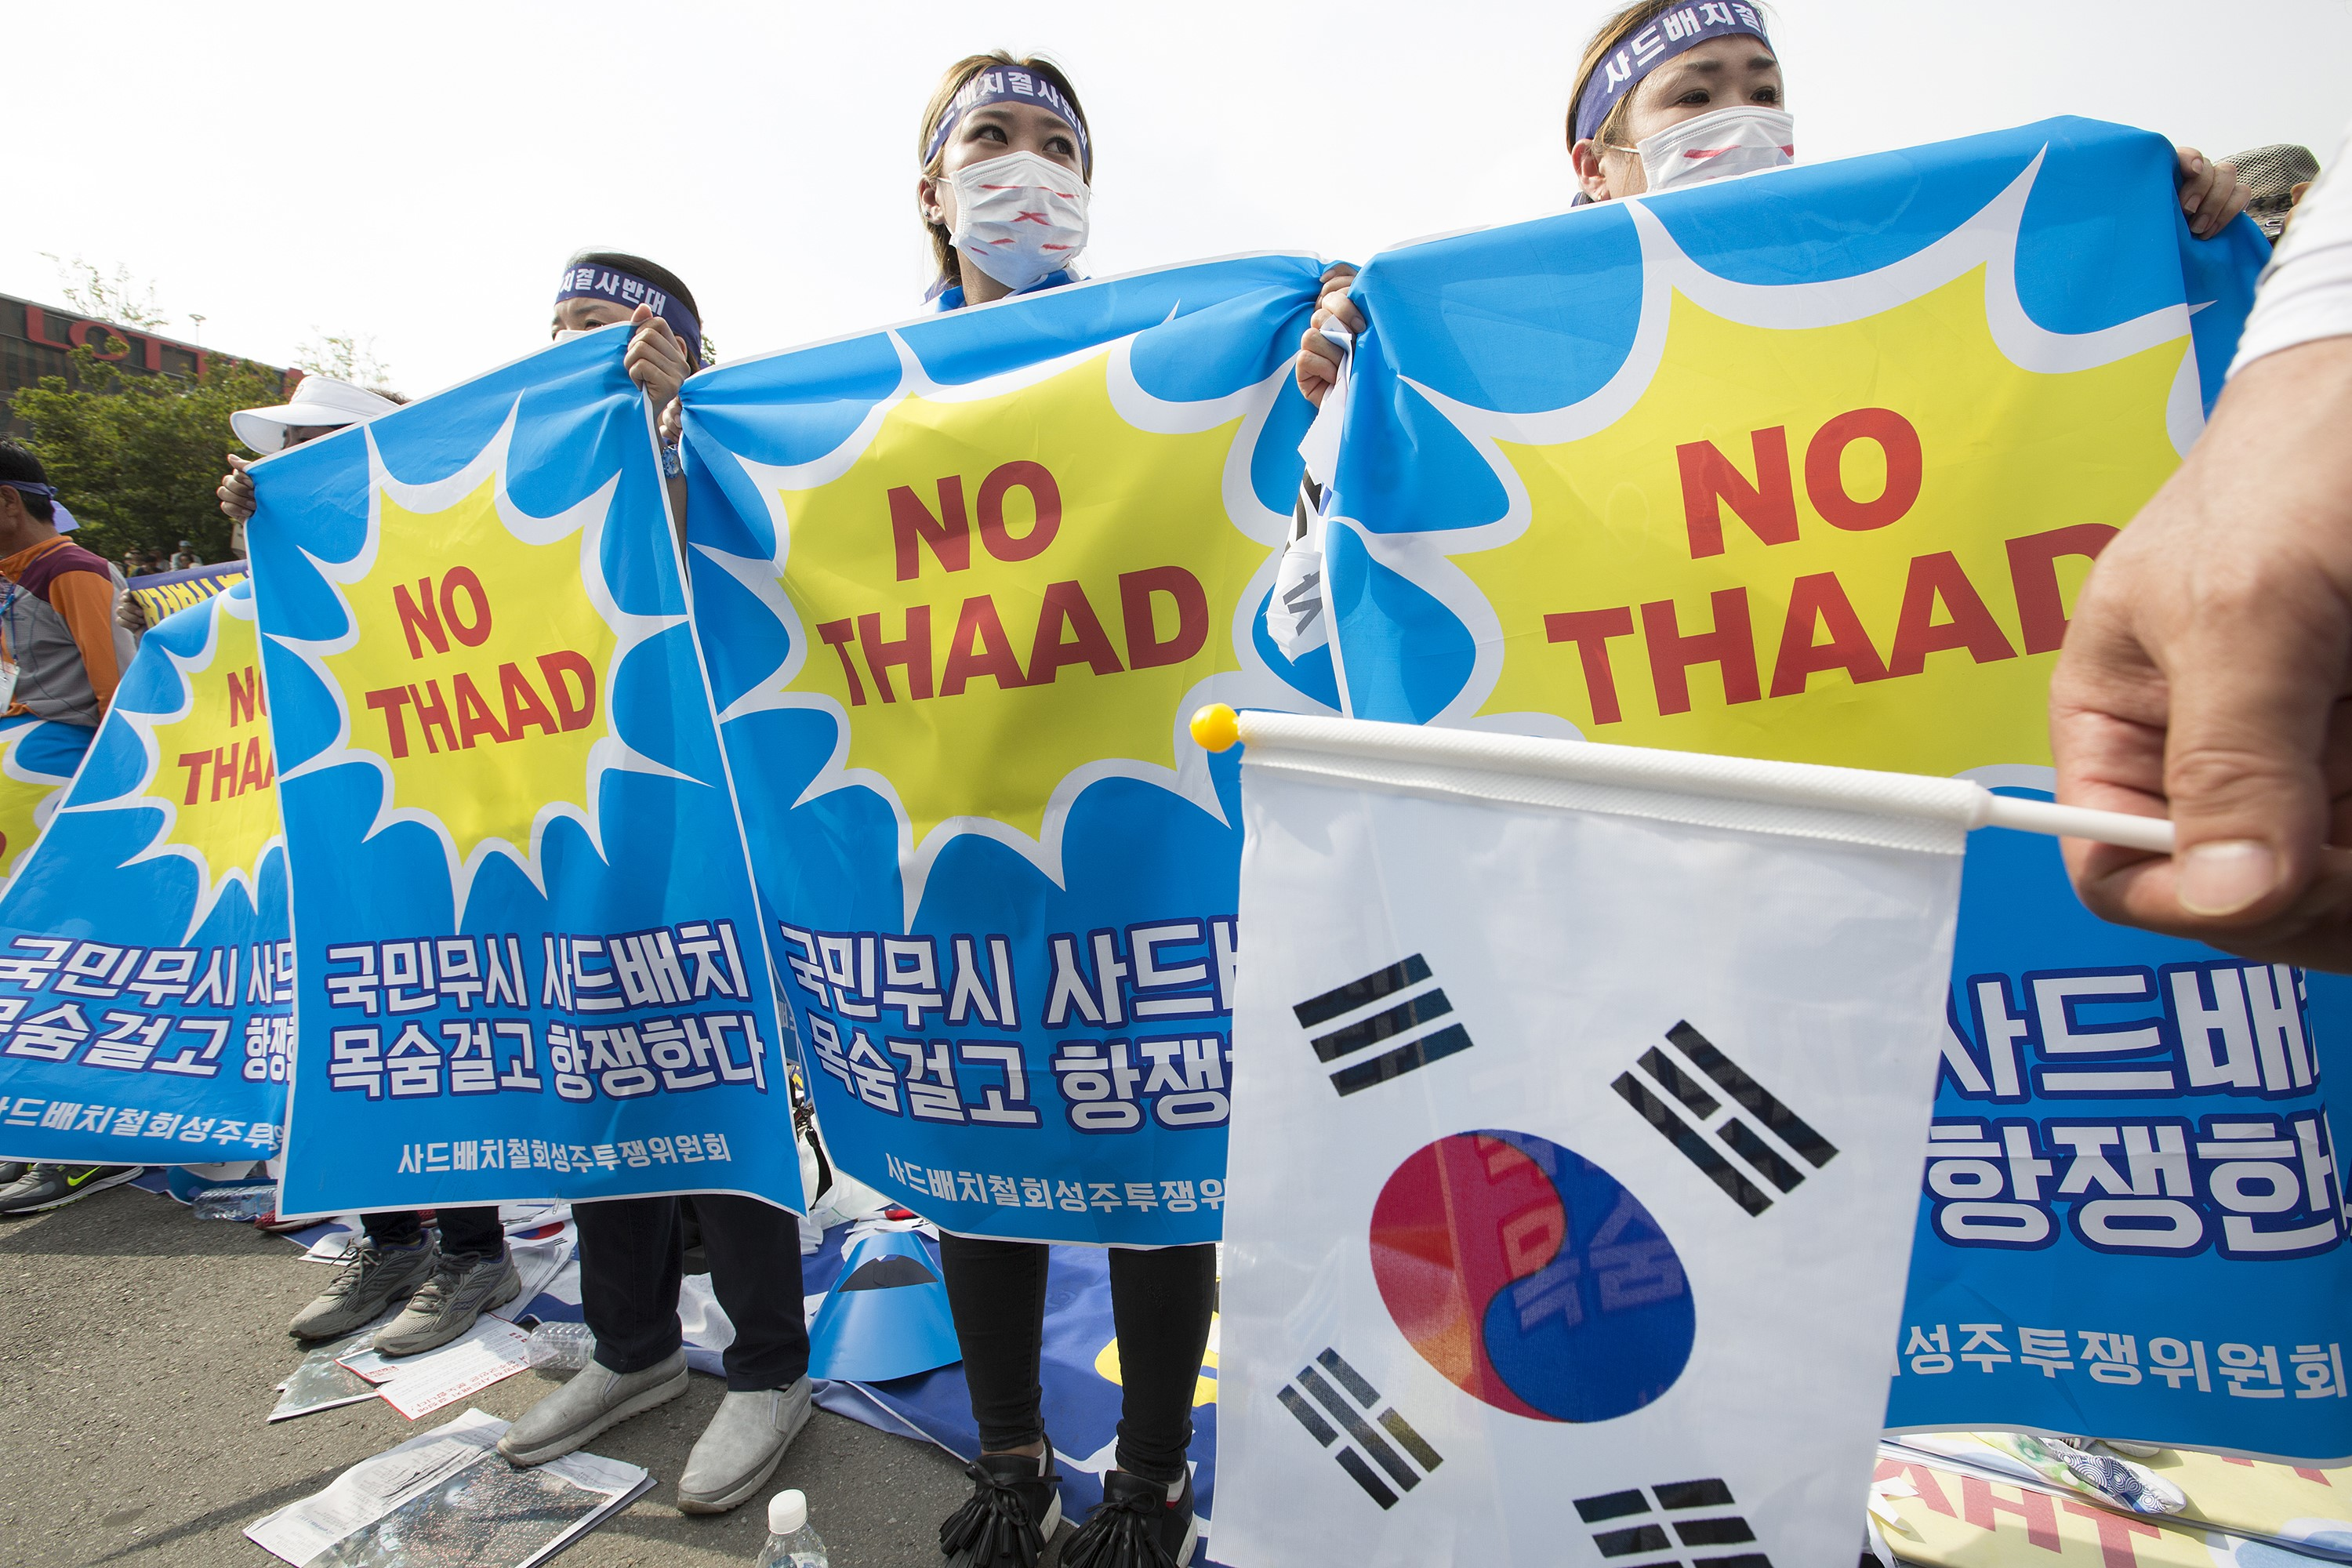 Residents of the Seongju municipality attend a rally in front of Seoul Station in Seoul, South Korea, 21 July 2016, to protest against the deployment of an advanced US missile defense system, known as Terminal High Altitude Area Defense (THAAD), in the town of Seongju, a county some 300 kilometers southeast of Seoul.